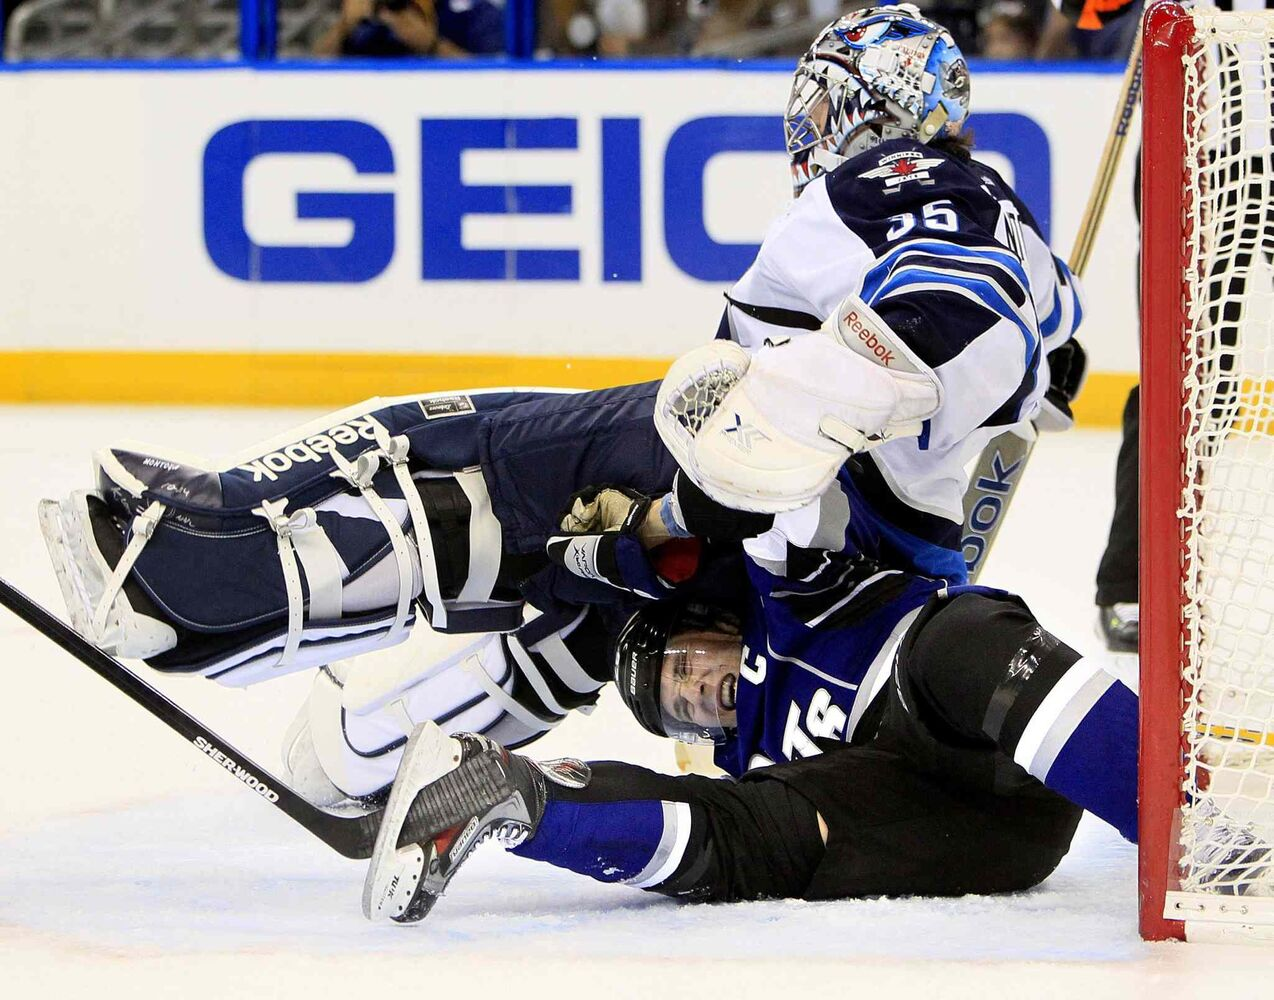 The Tampa Bay Lightning's Martin St. Louis (bottom) is crushed under Winnipeg Jets goalie Al Montoya in the crease during the first period. (Dirk Shadd / Tampa Bay Times / MCT)